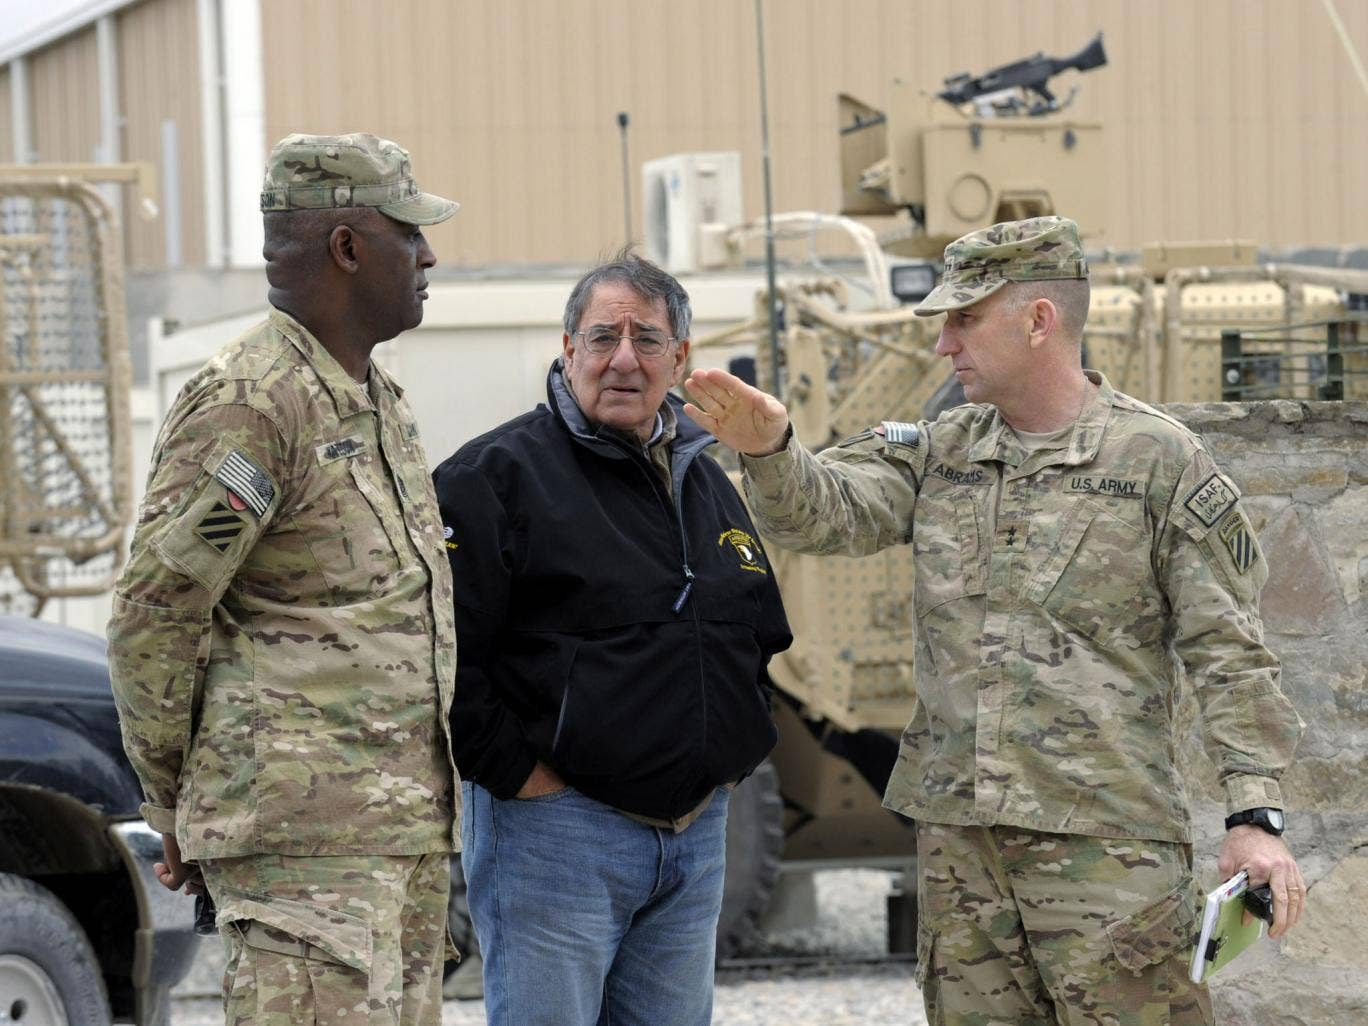 US Defense Secretary Leon Panetta talks with Army Maj. Gen. Robert Abrams, (R) and Command Sgt. Maj. Edd Watson, (L) during a visit to Kandahar Airfield